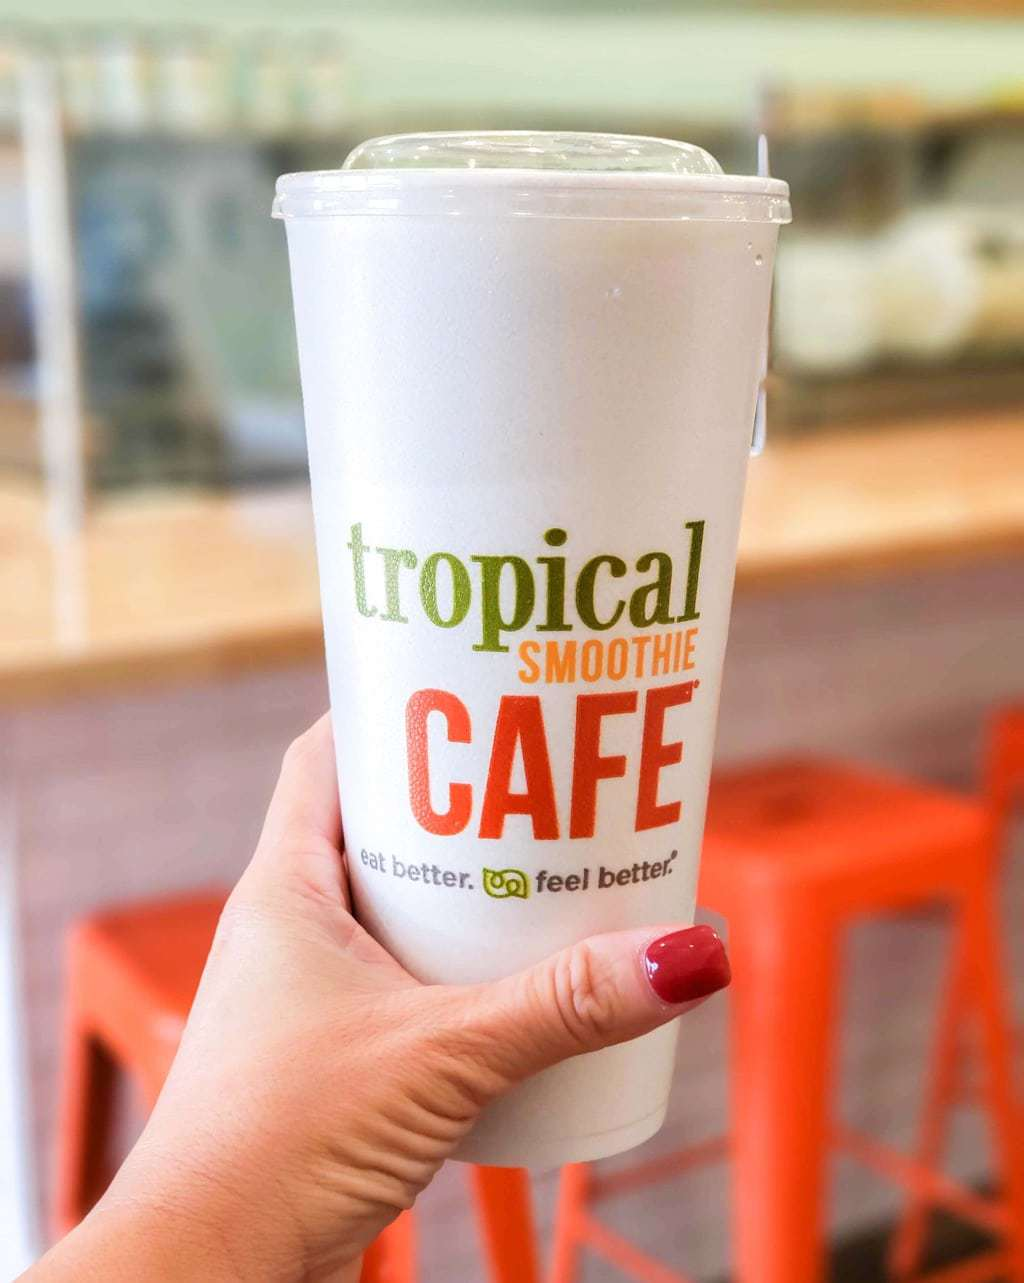 Tropical Smoothie Cafe, Detox Green Smoothie